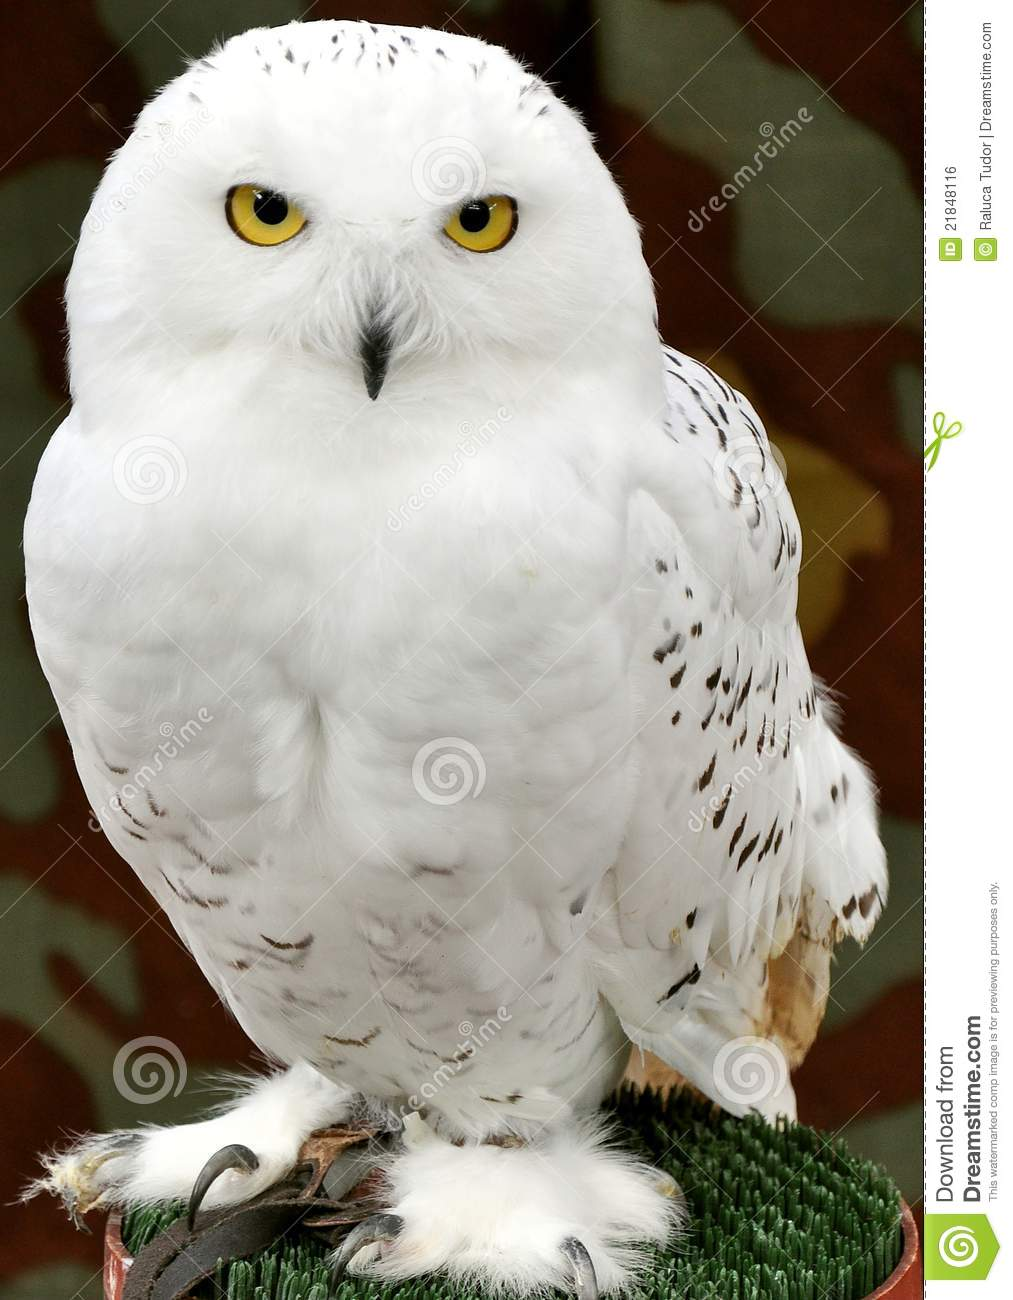 White owl with yellow eyes on a bird exhibition in Italy.